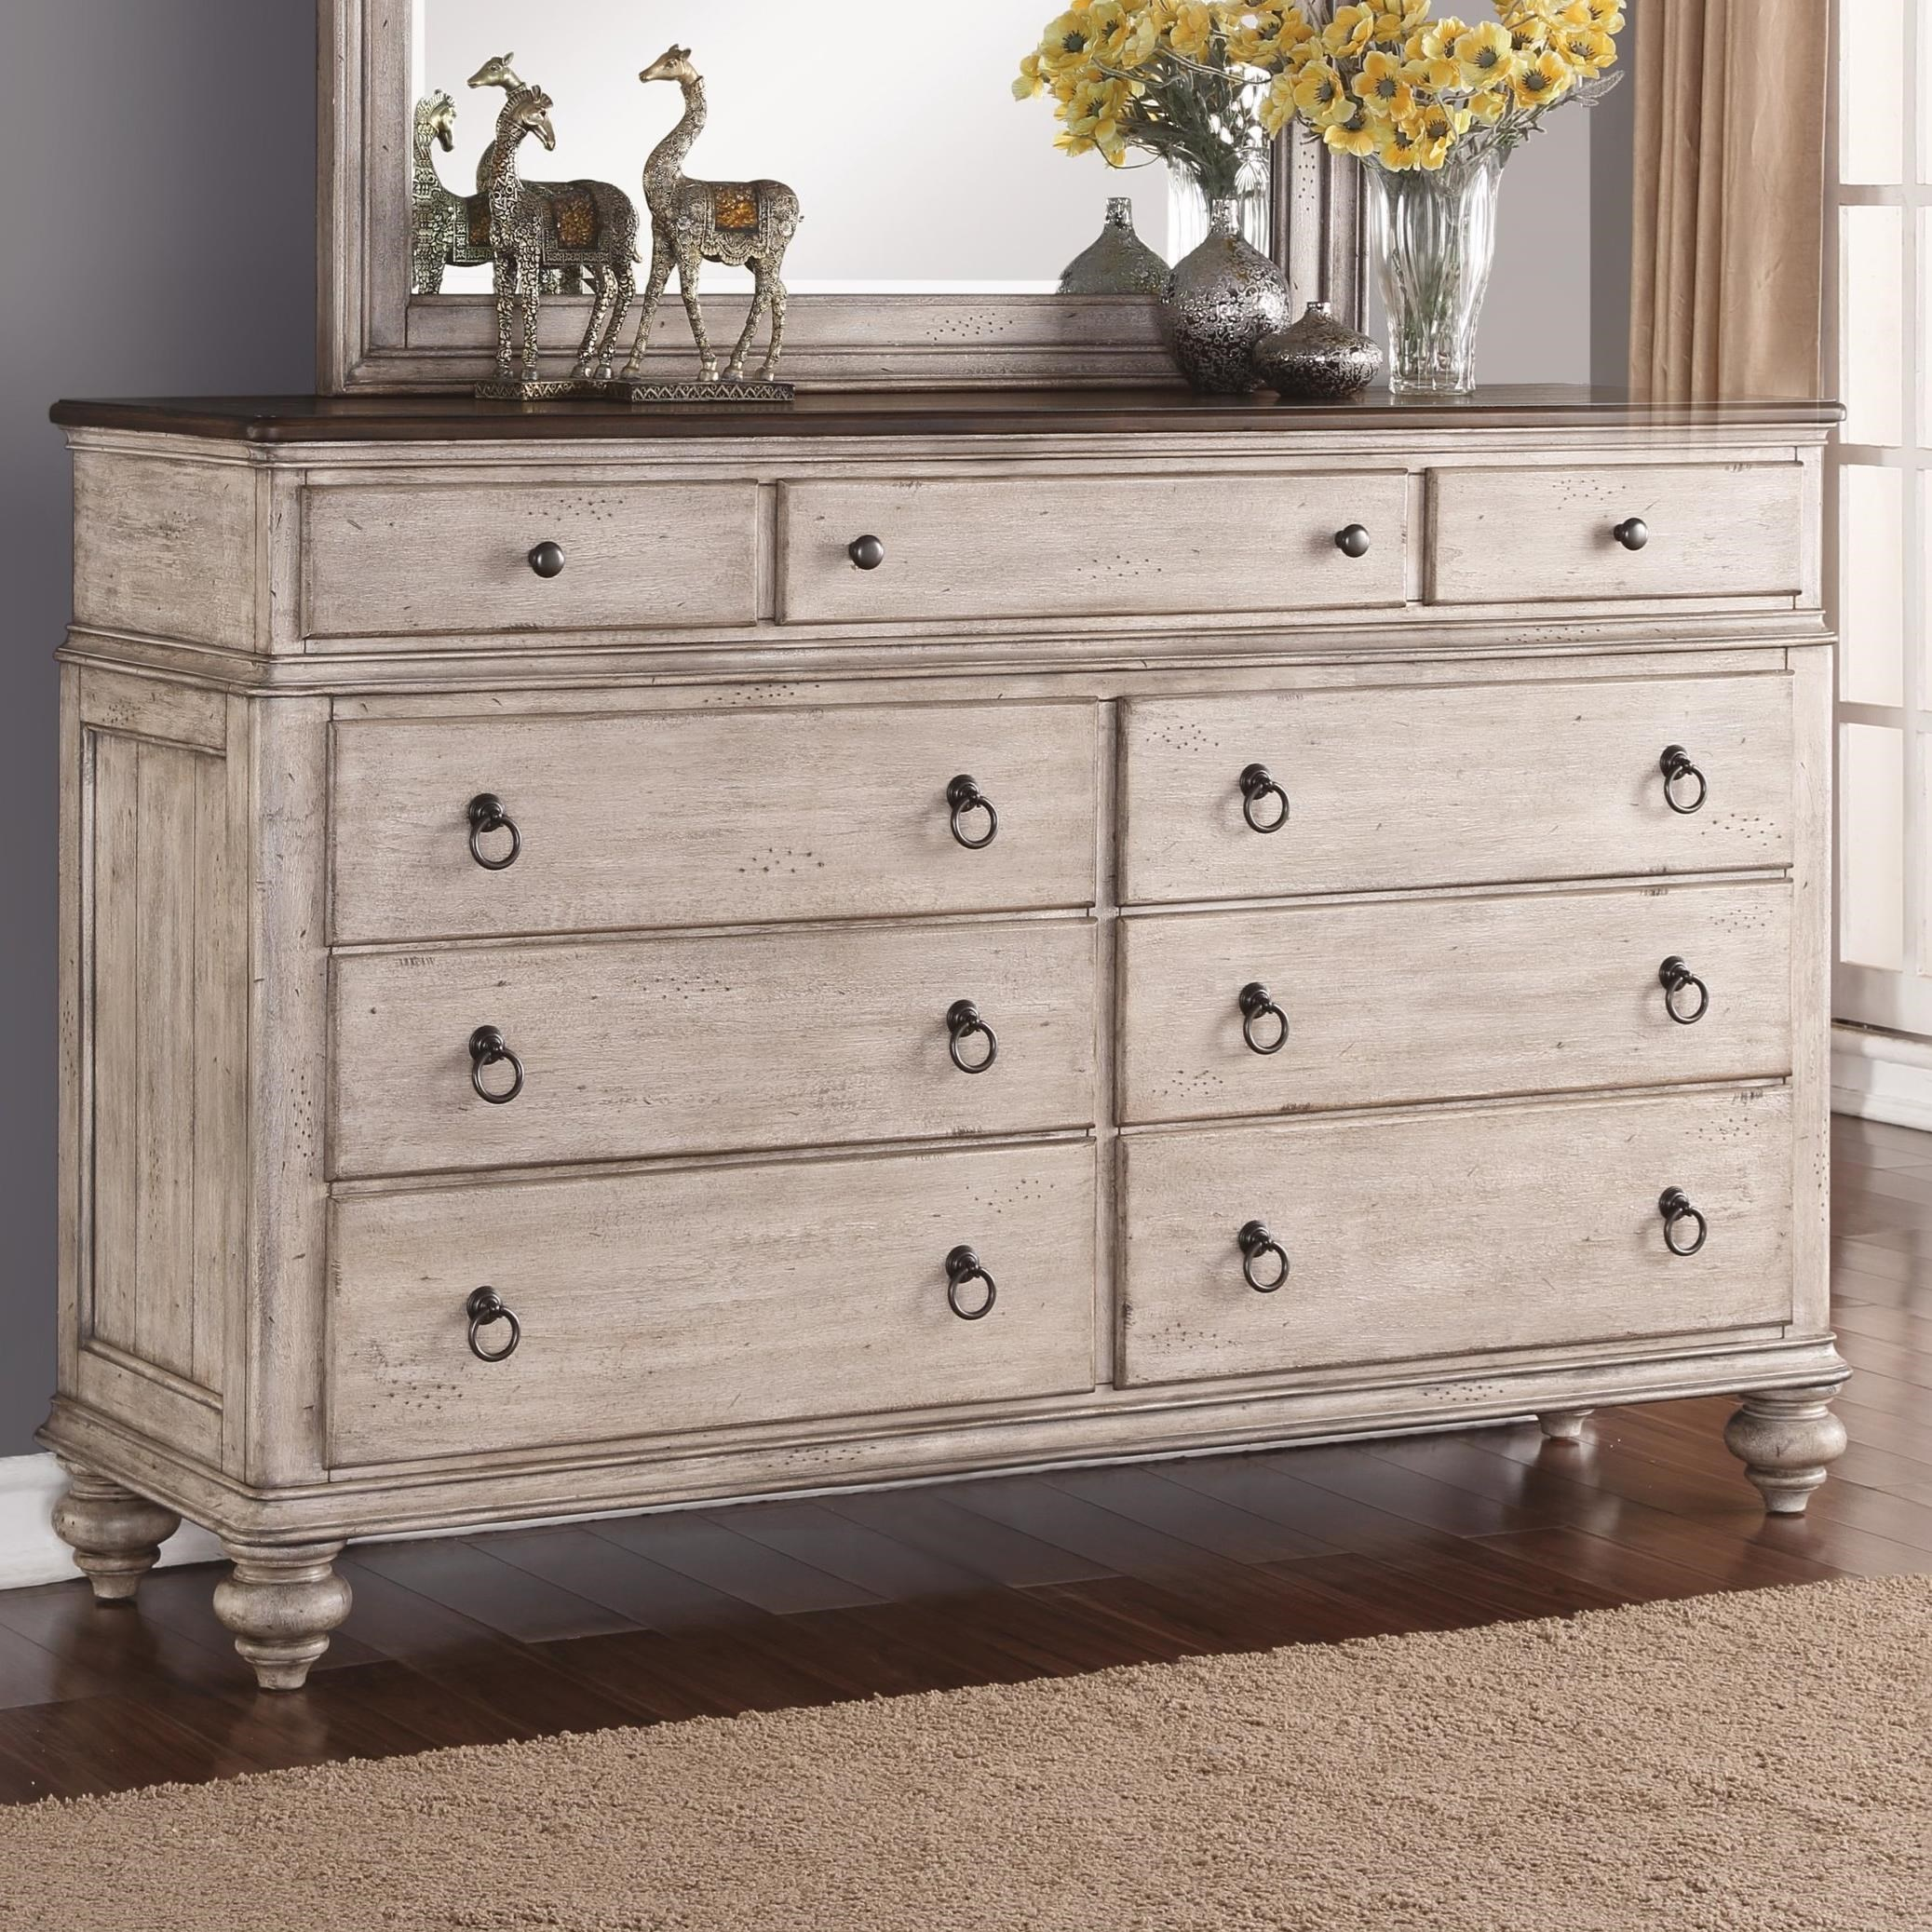 Flexsteel Wynwood Collection Plymouth Dresser   Item Number: W1047 860